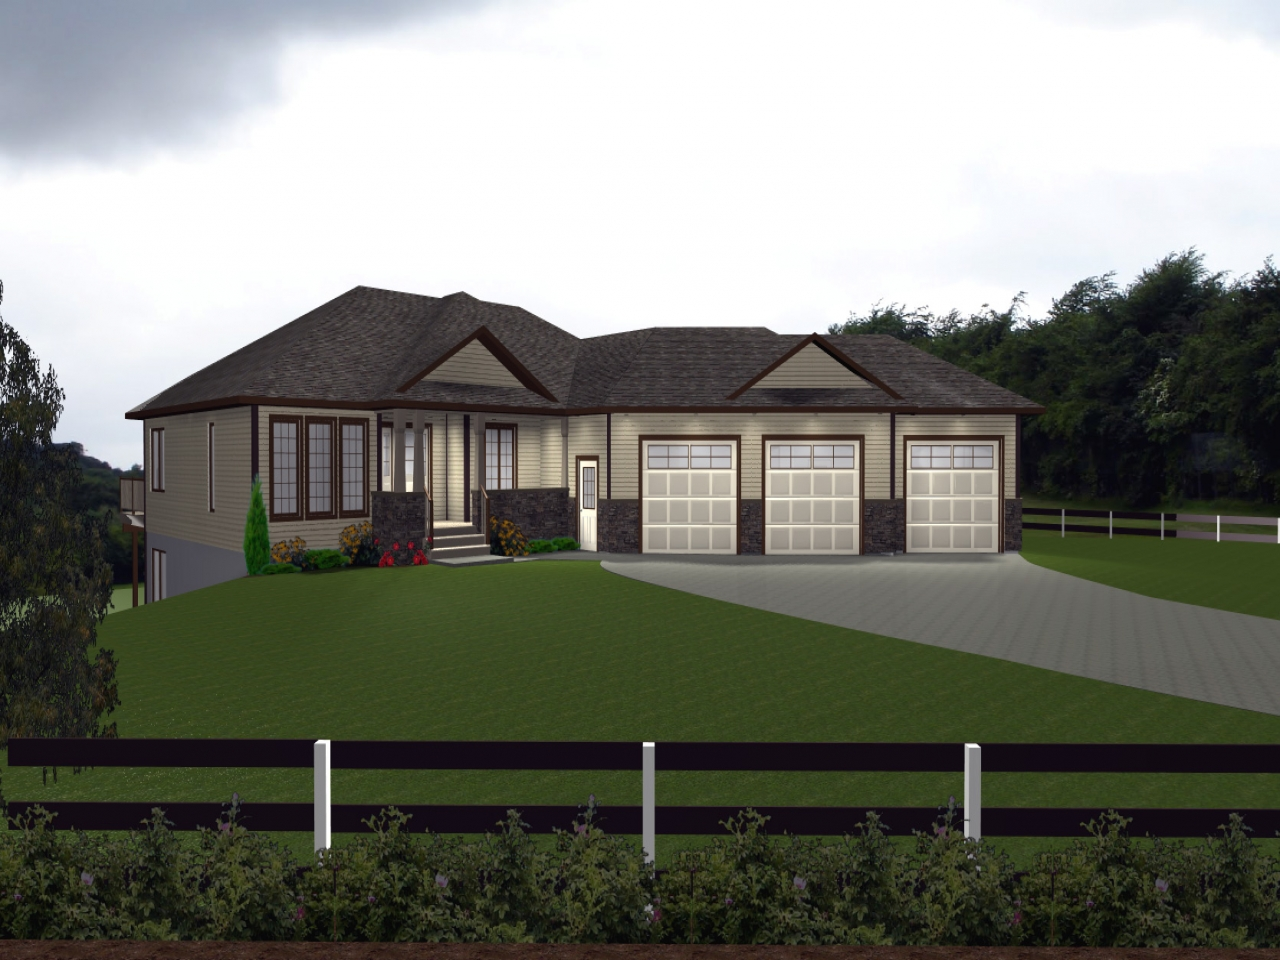 Carport plans attached to house house plans with attached Ranch house plans with basement 3 car garage